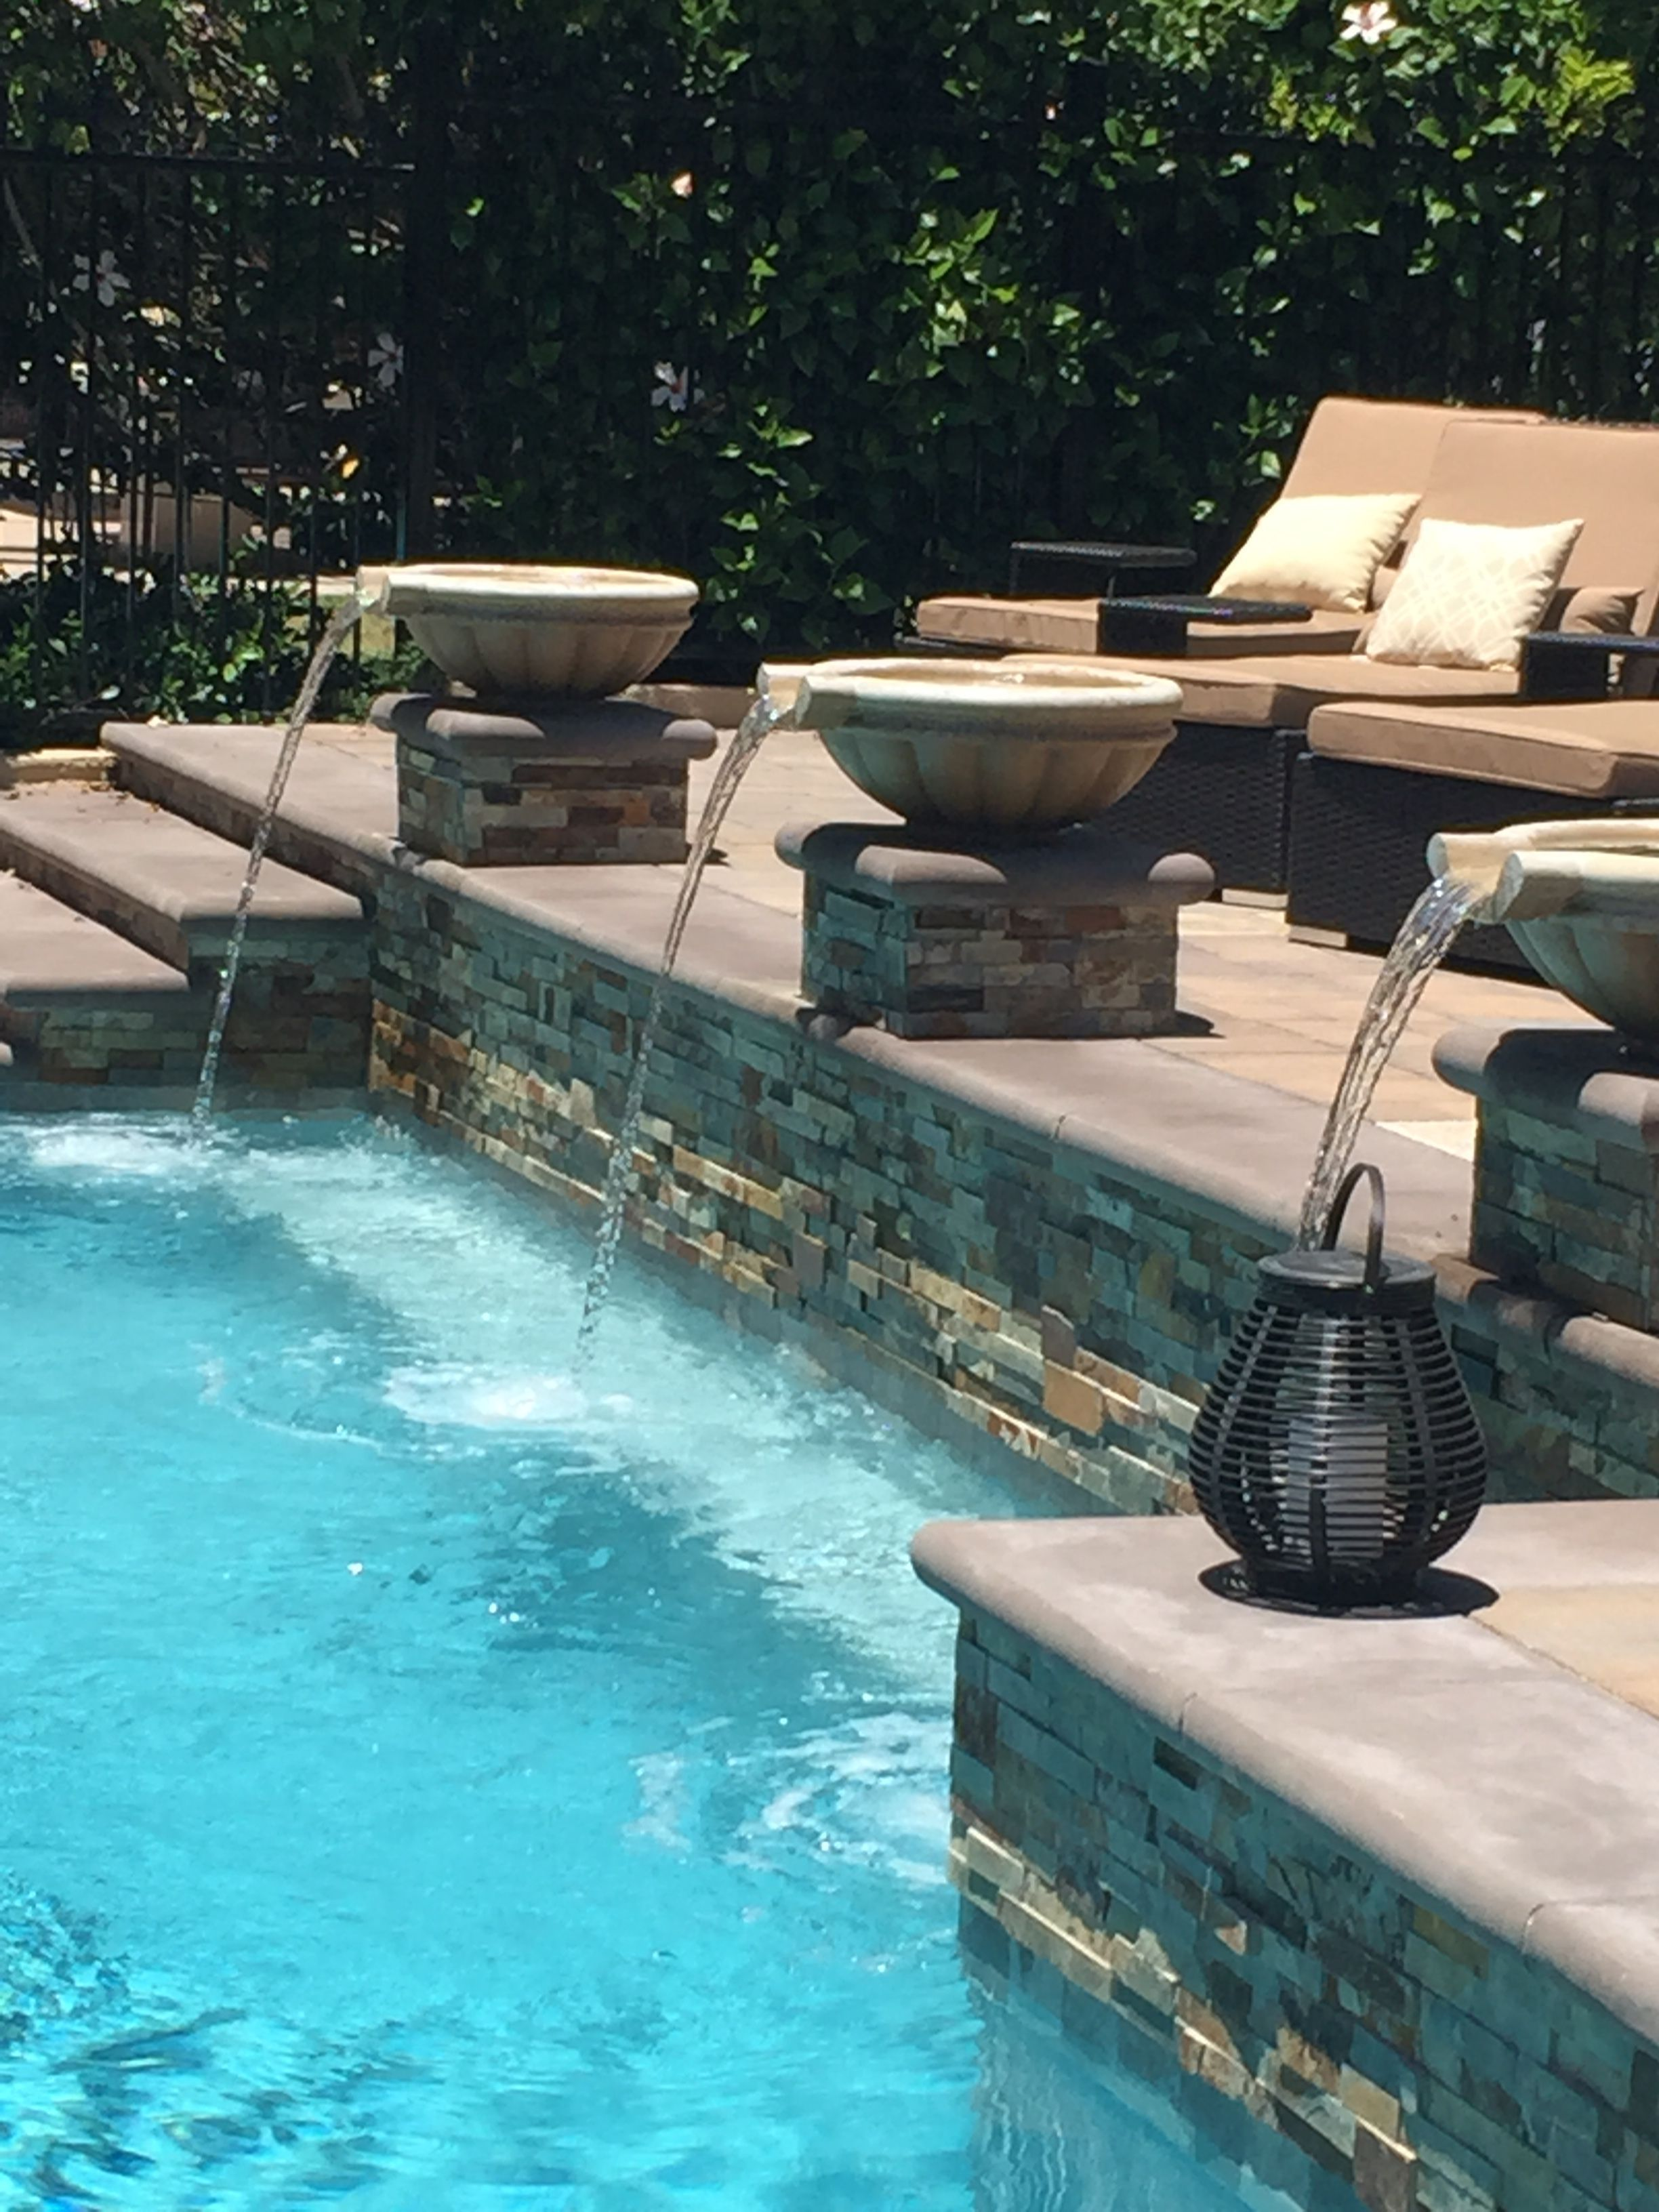 Allow Me Just Sayif Youre Reading This Article Its Beautiful Secure To Tell You Have Fine Tas Inground Pool Landscaping Pool Remodel Backyard Pool Landscaping